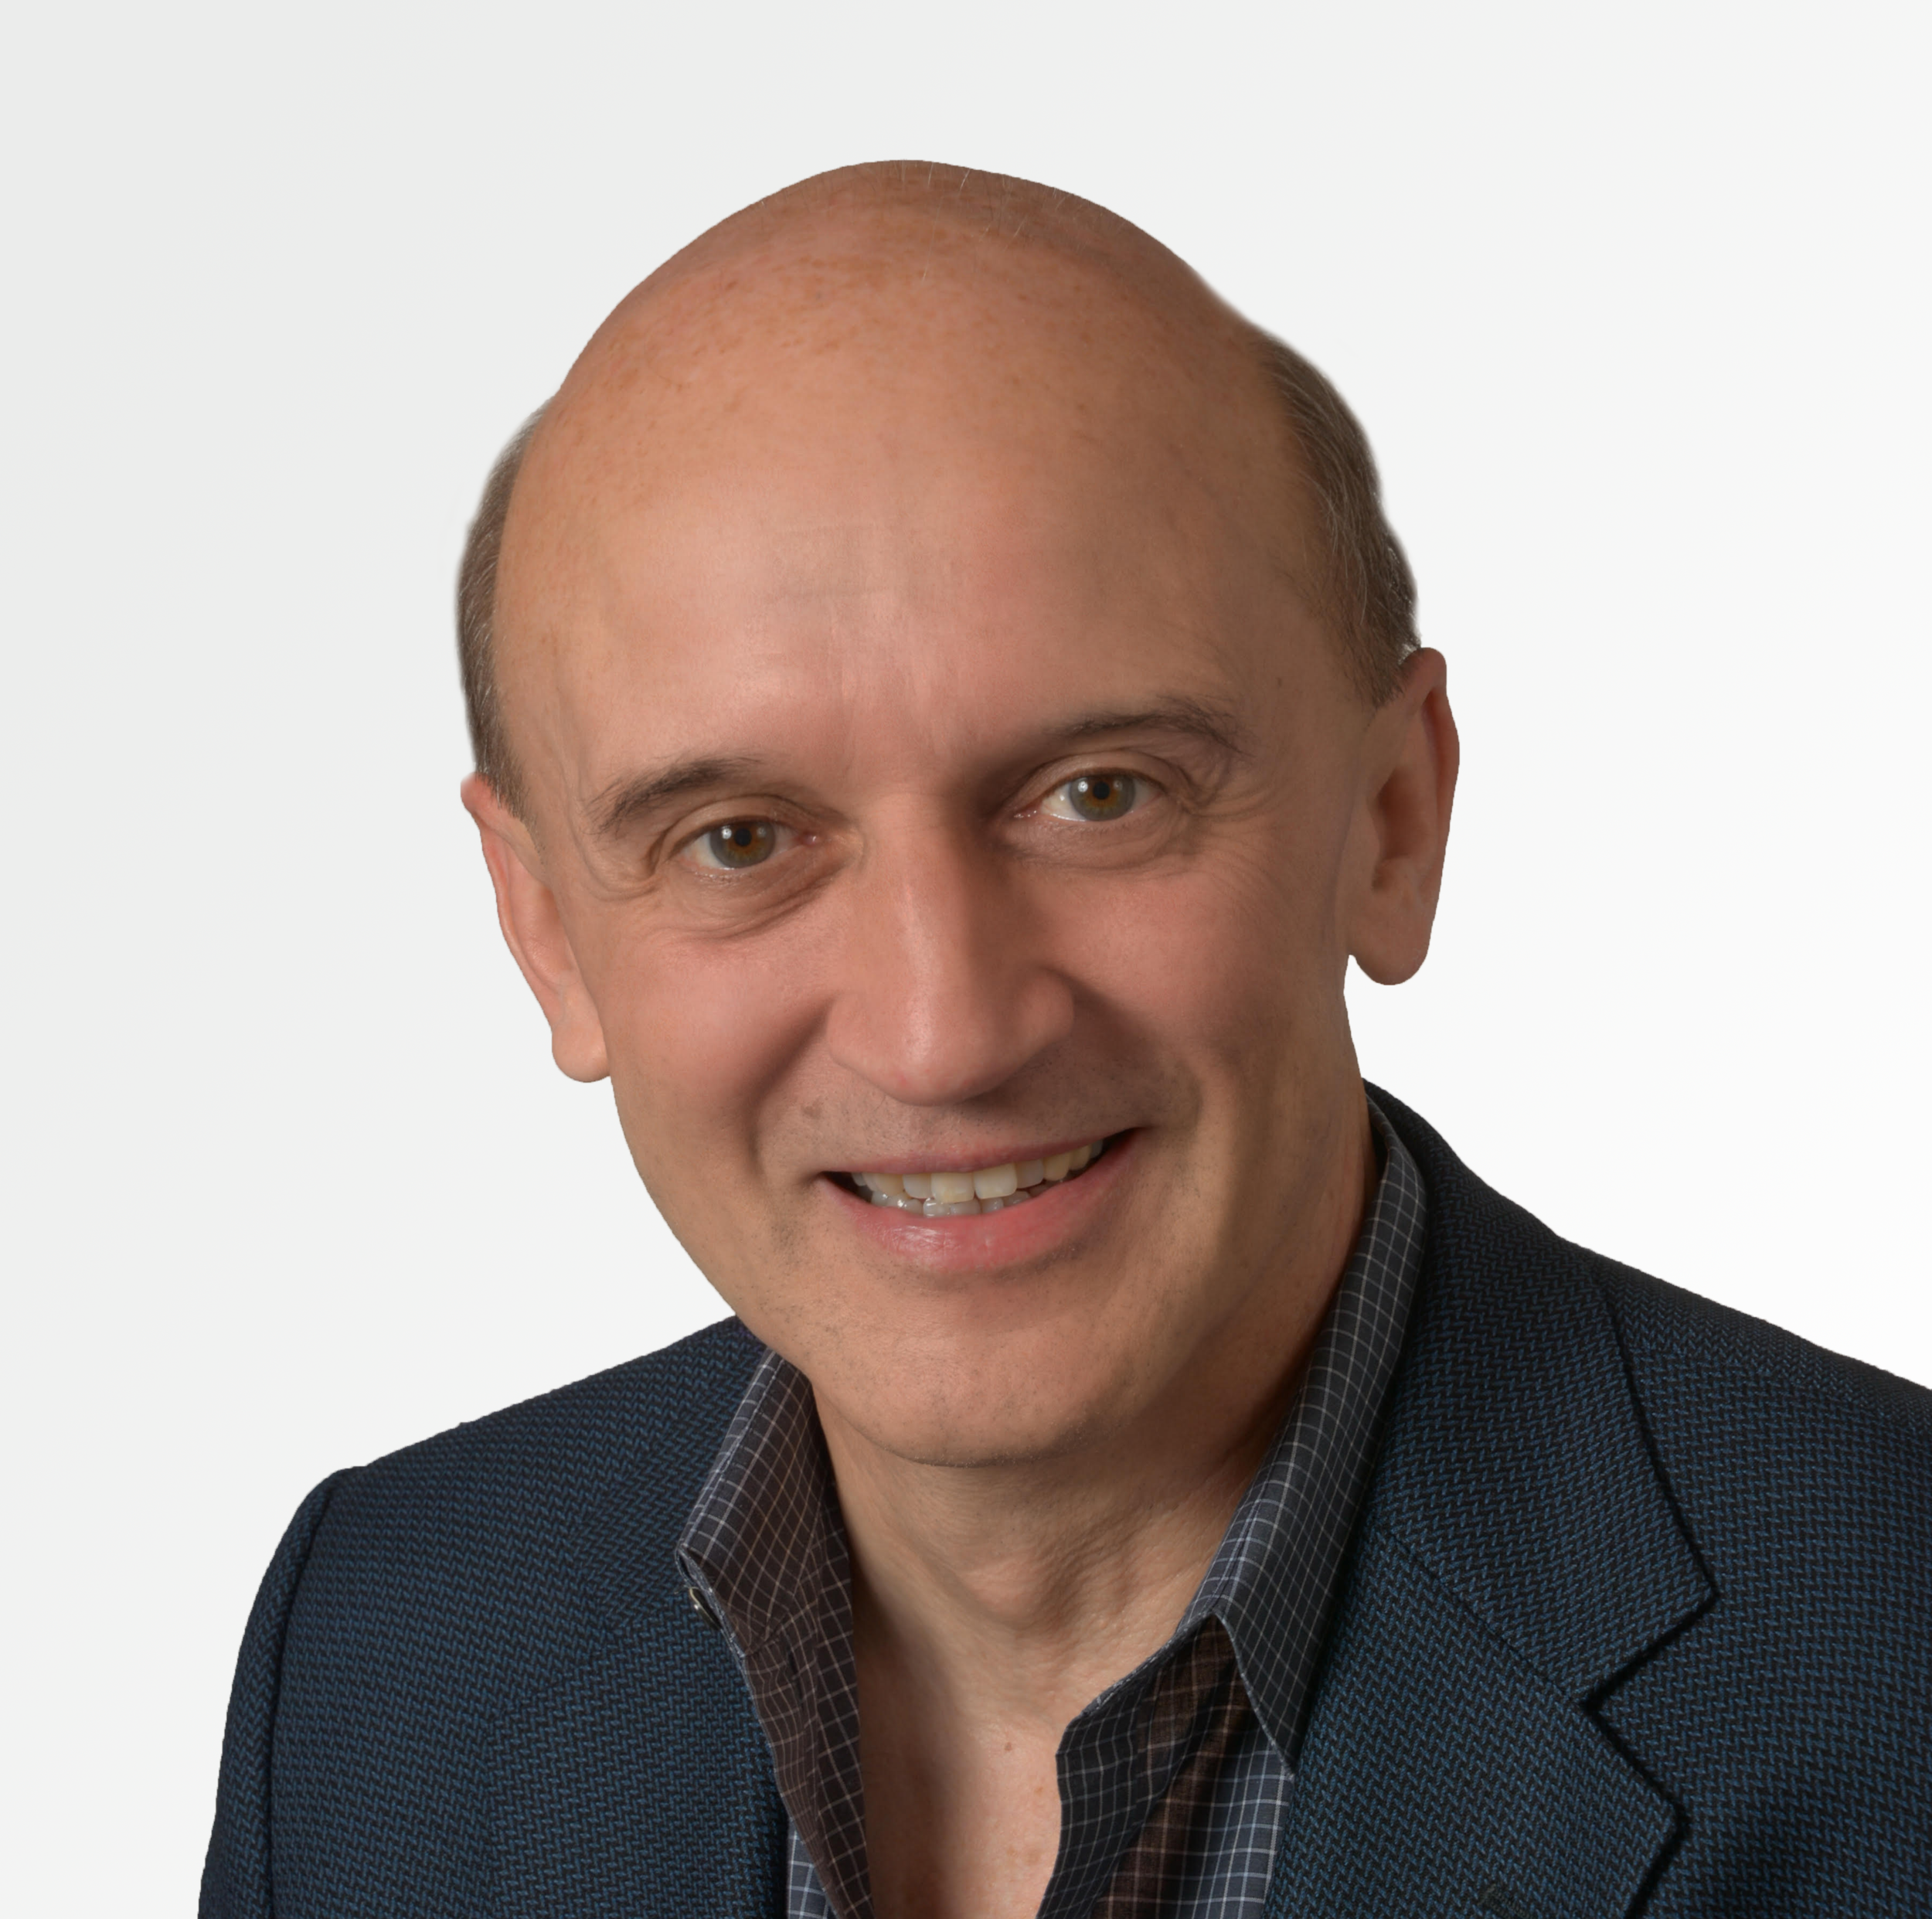 Klaus Sonnenleiter - CEO & Co-Founder